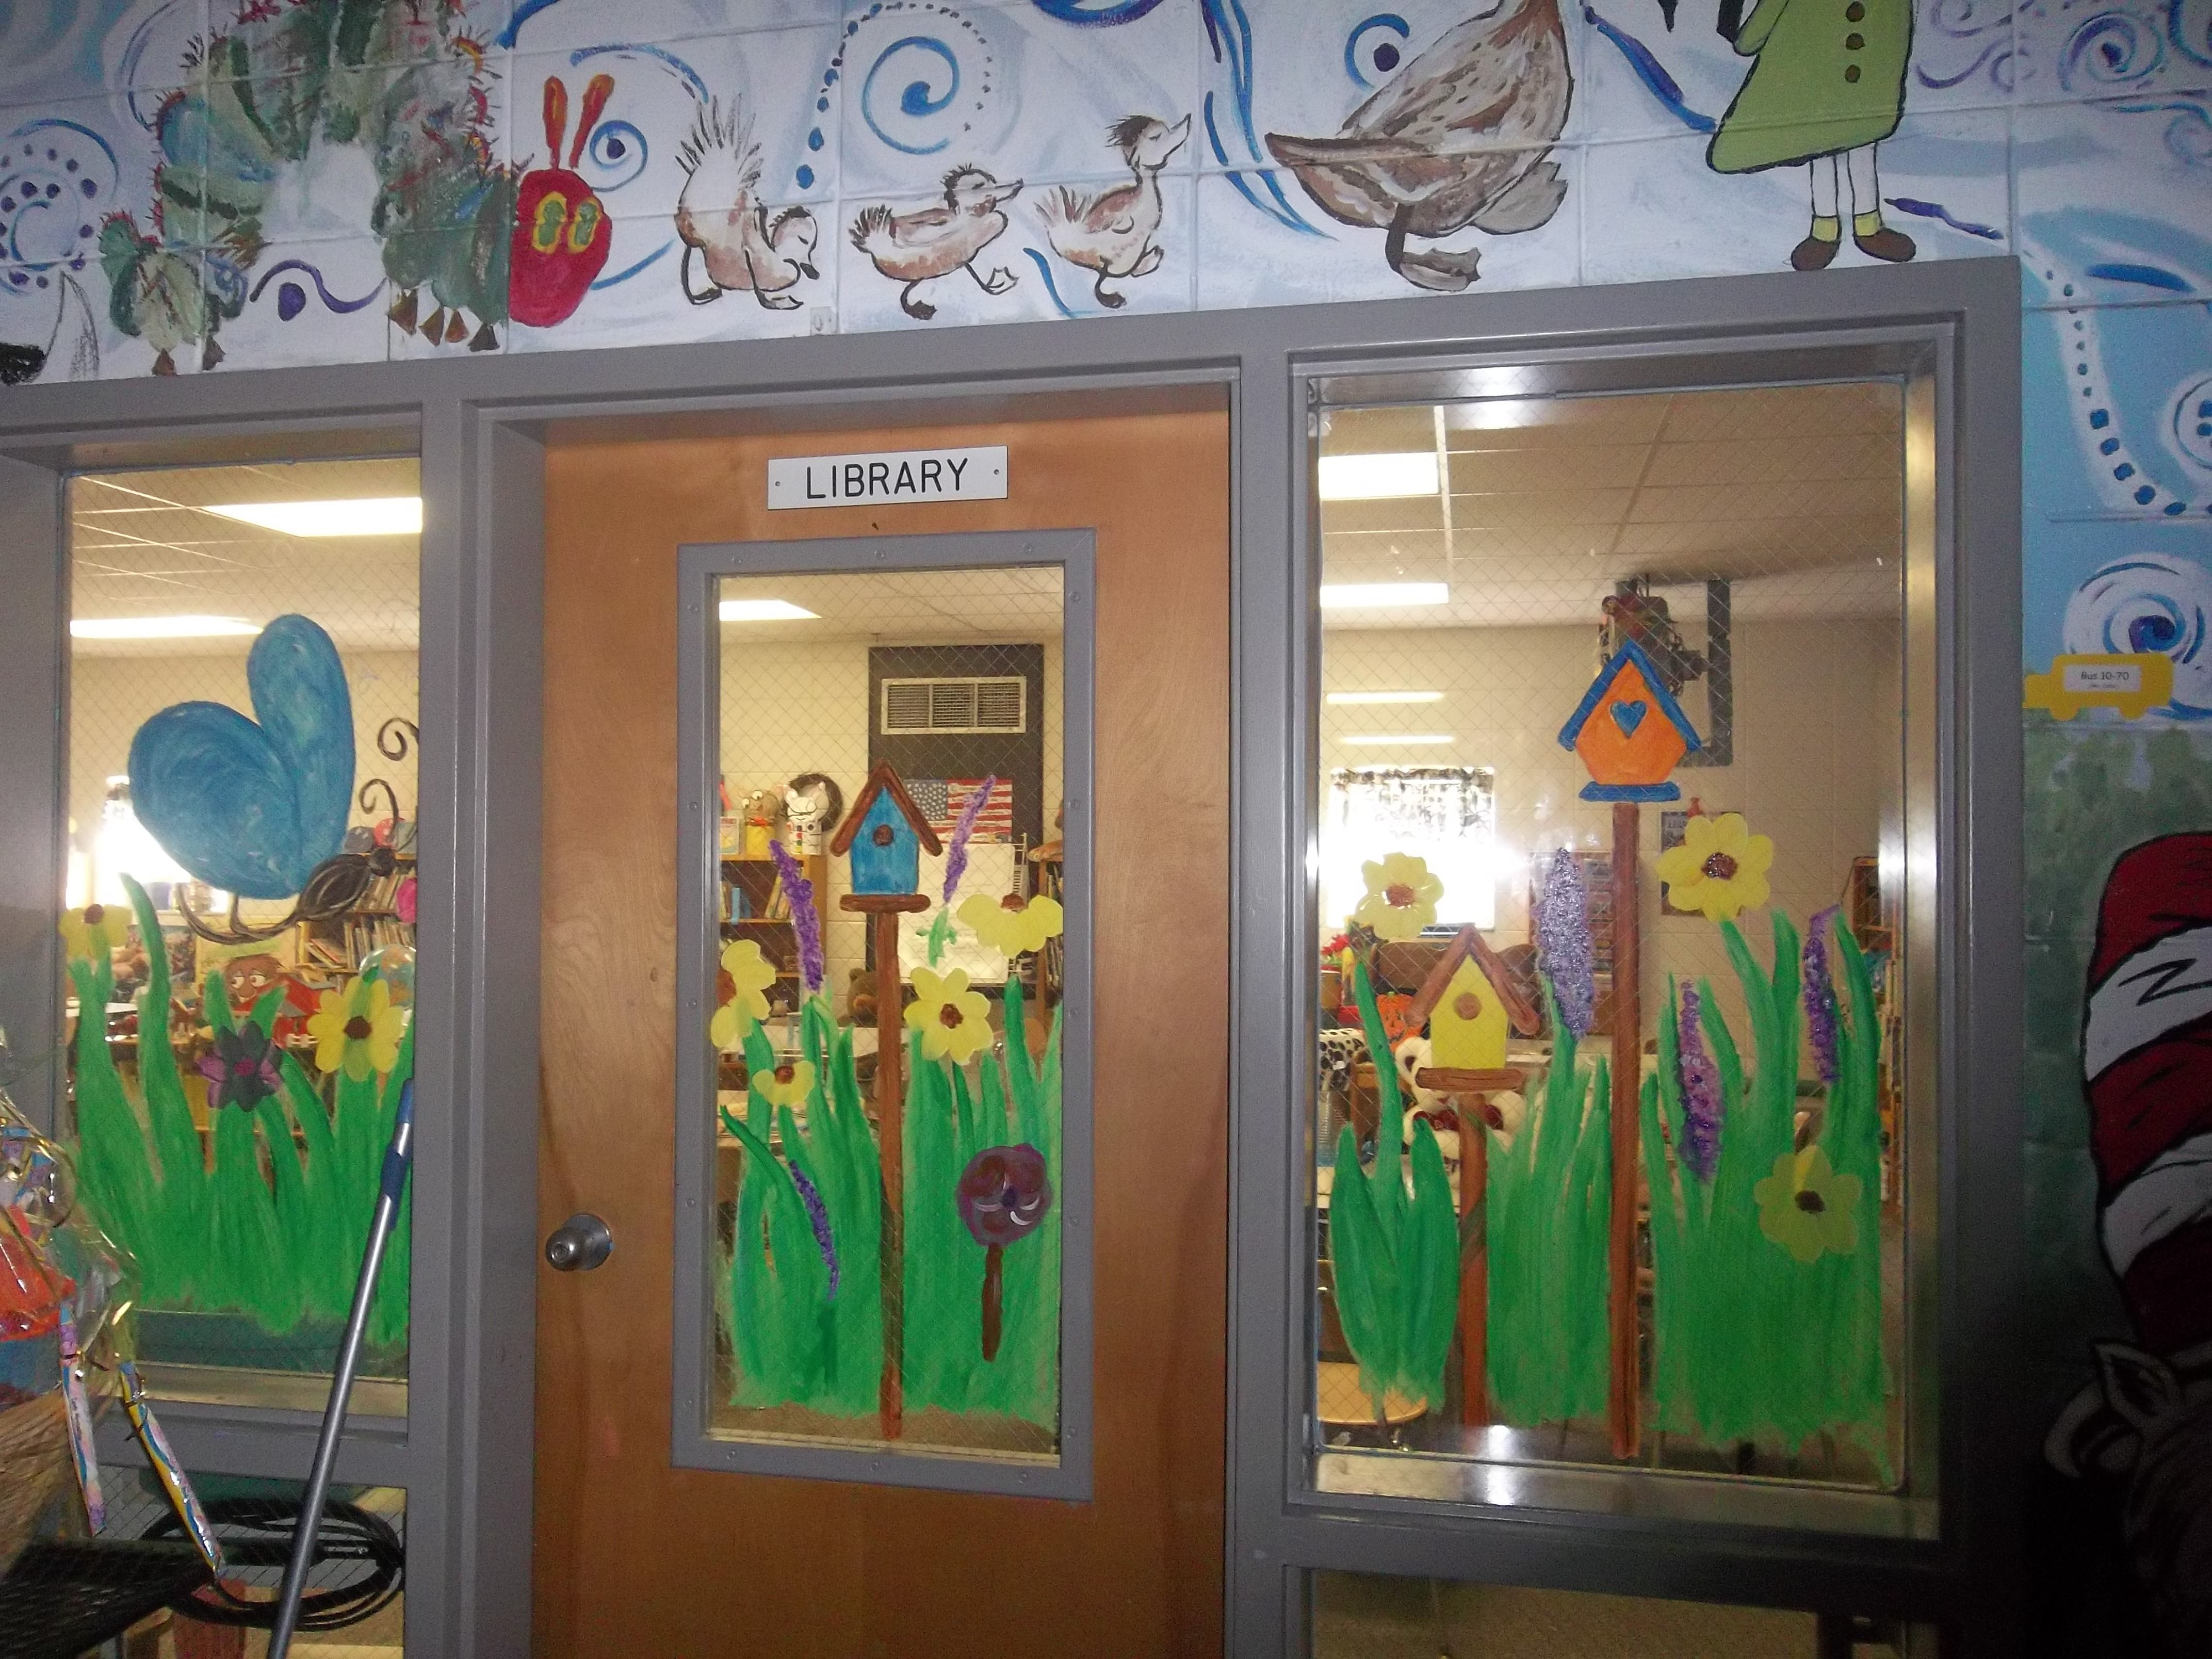 Classroom Decoration Window ~ Spring window painting with students library ideas